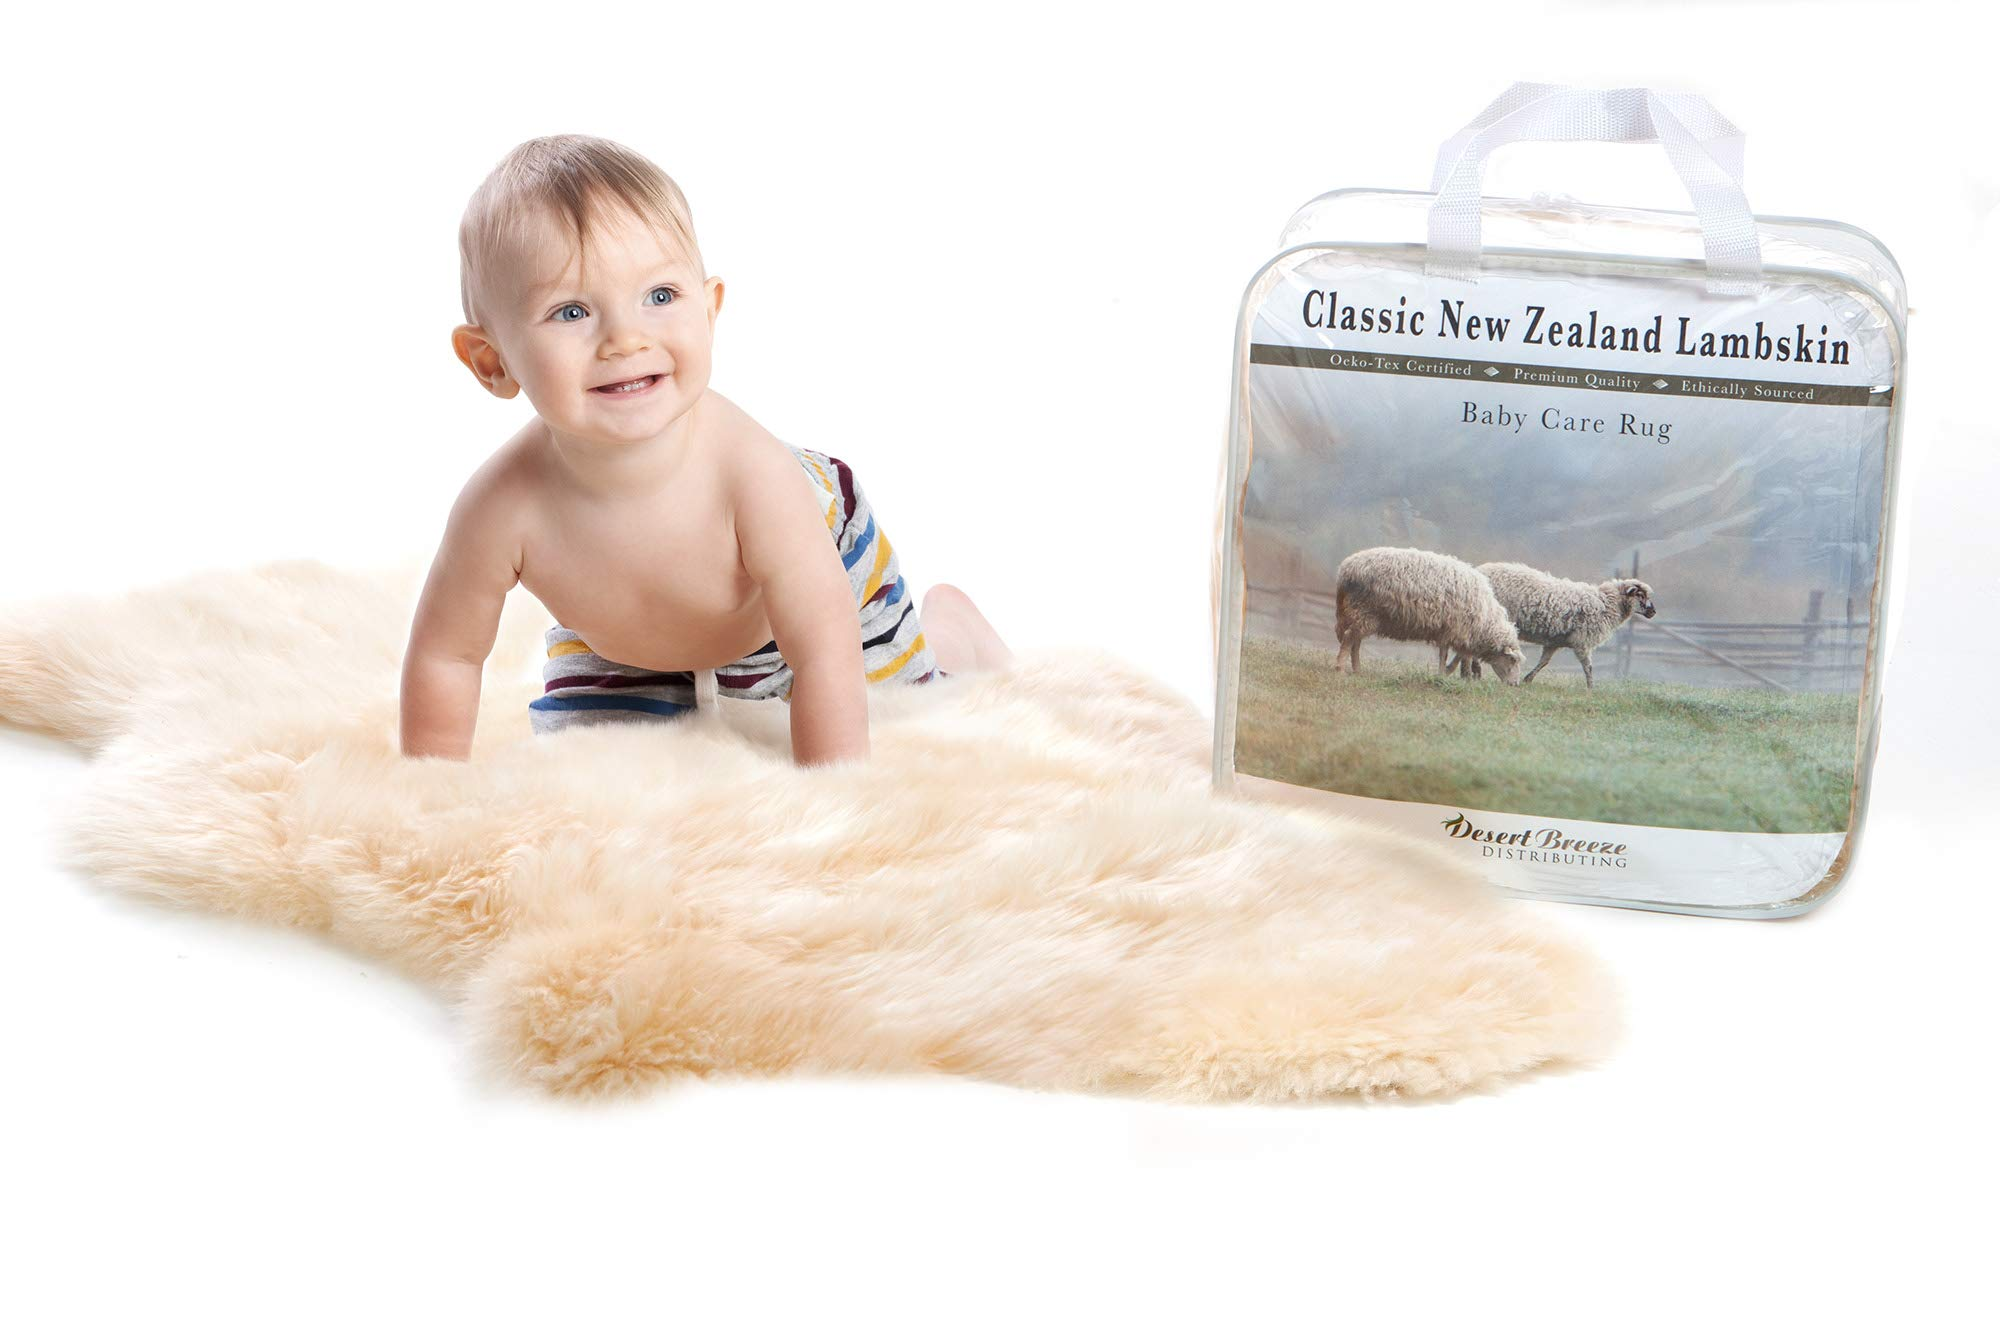 New Zealand Classic Lambskin, Ethically Sourced, Silky Soft Natural Length Wool, Un-Shorn Baby Care Rug, Premium Quality, Medium Size 32'' to 34''